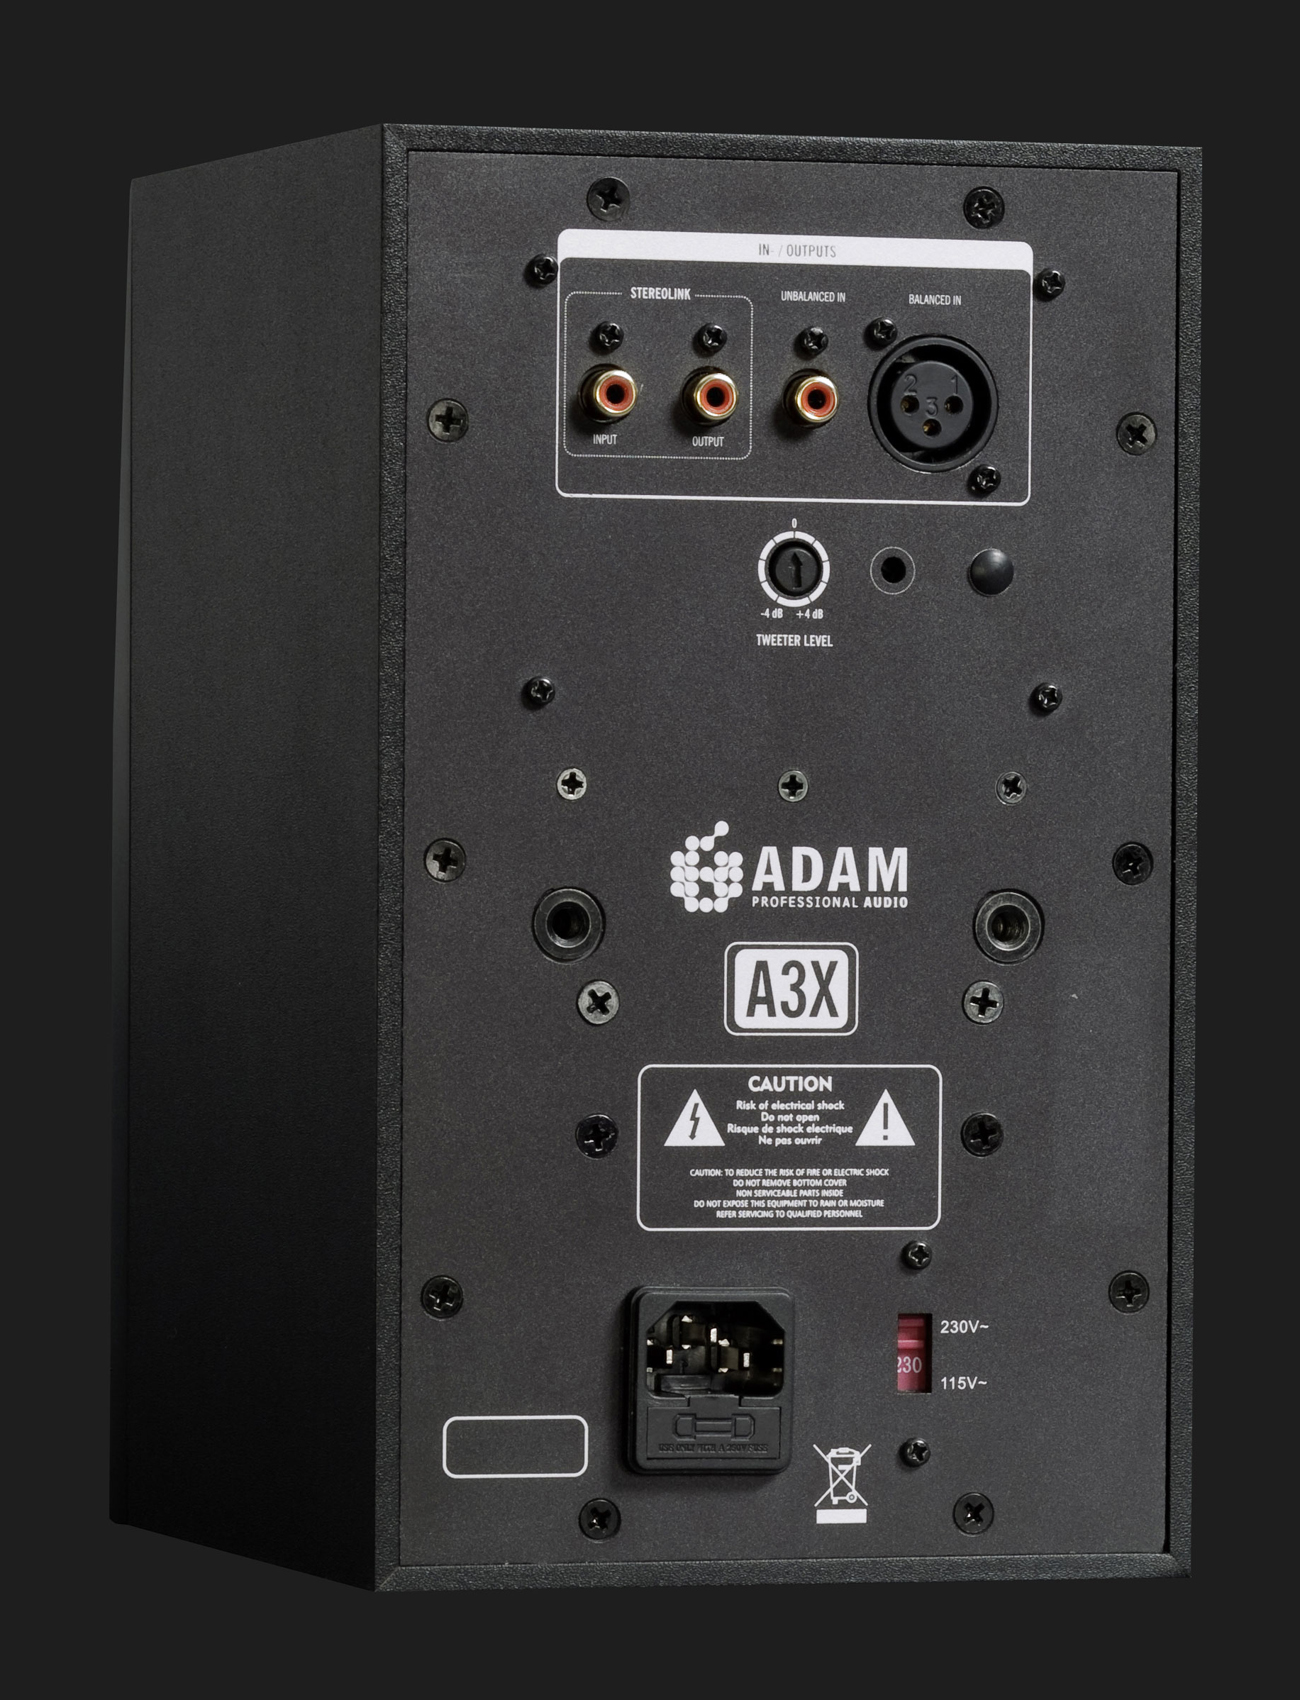 ADAM Audio A3X desktop studio monitor